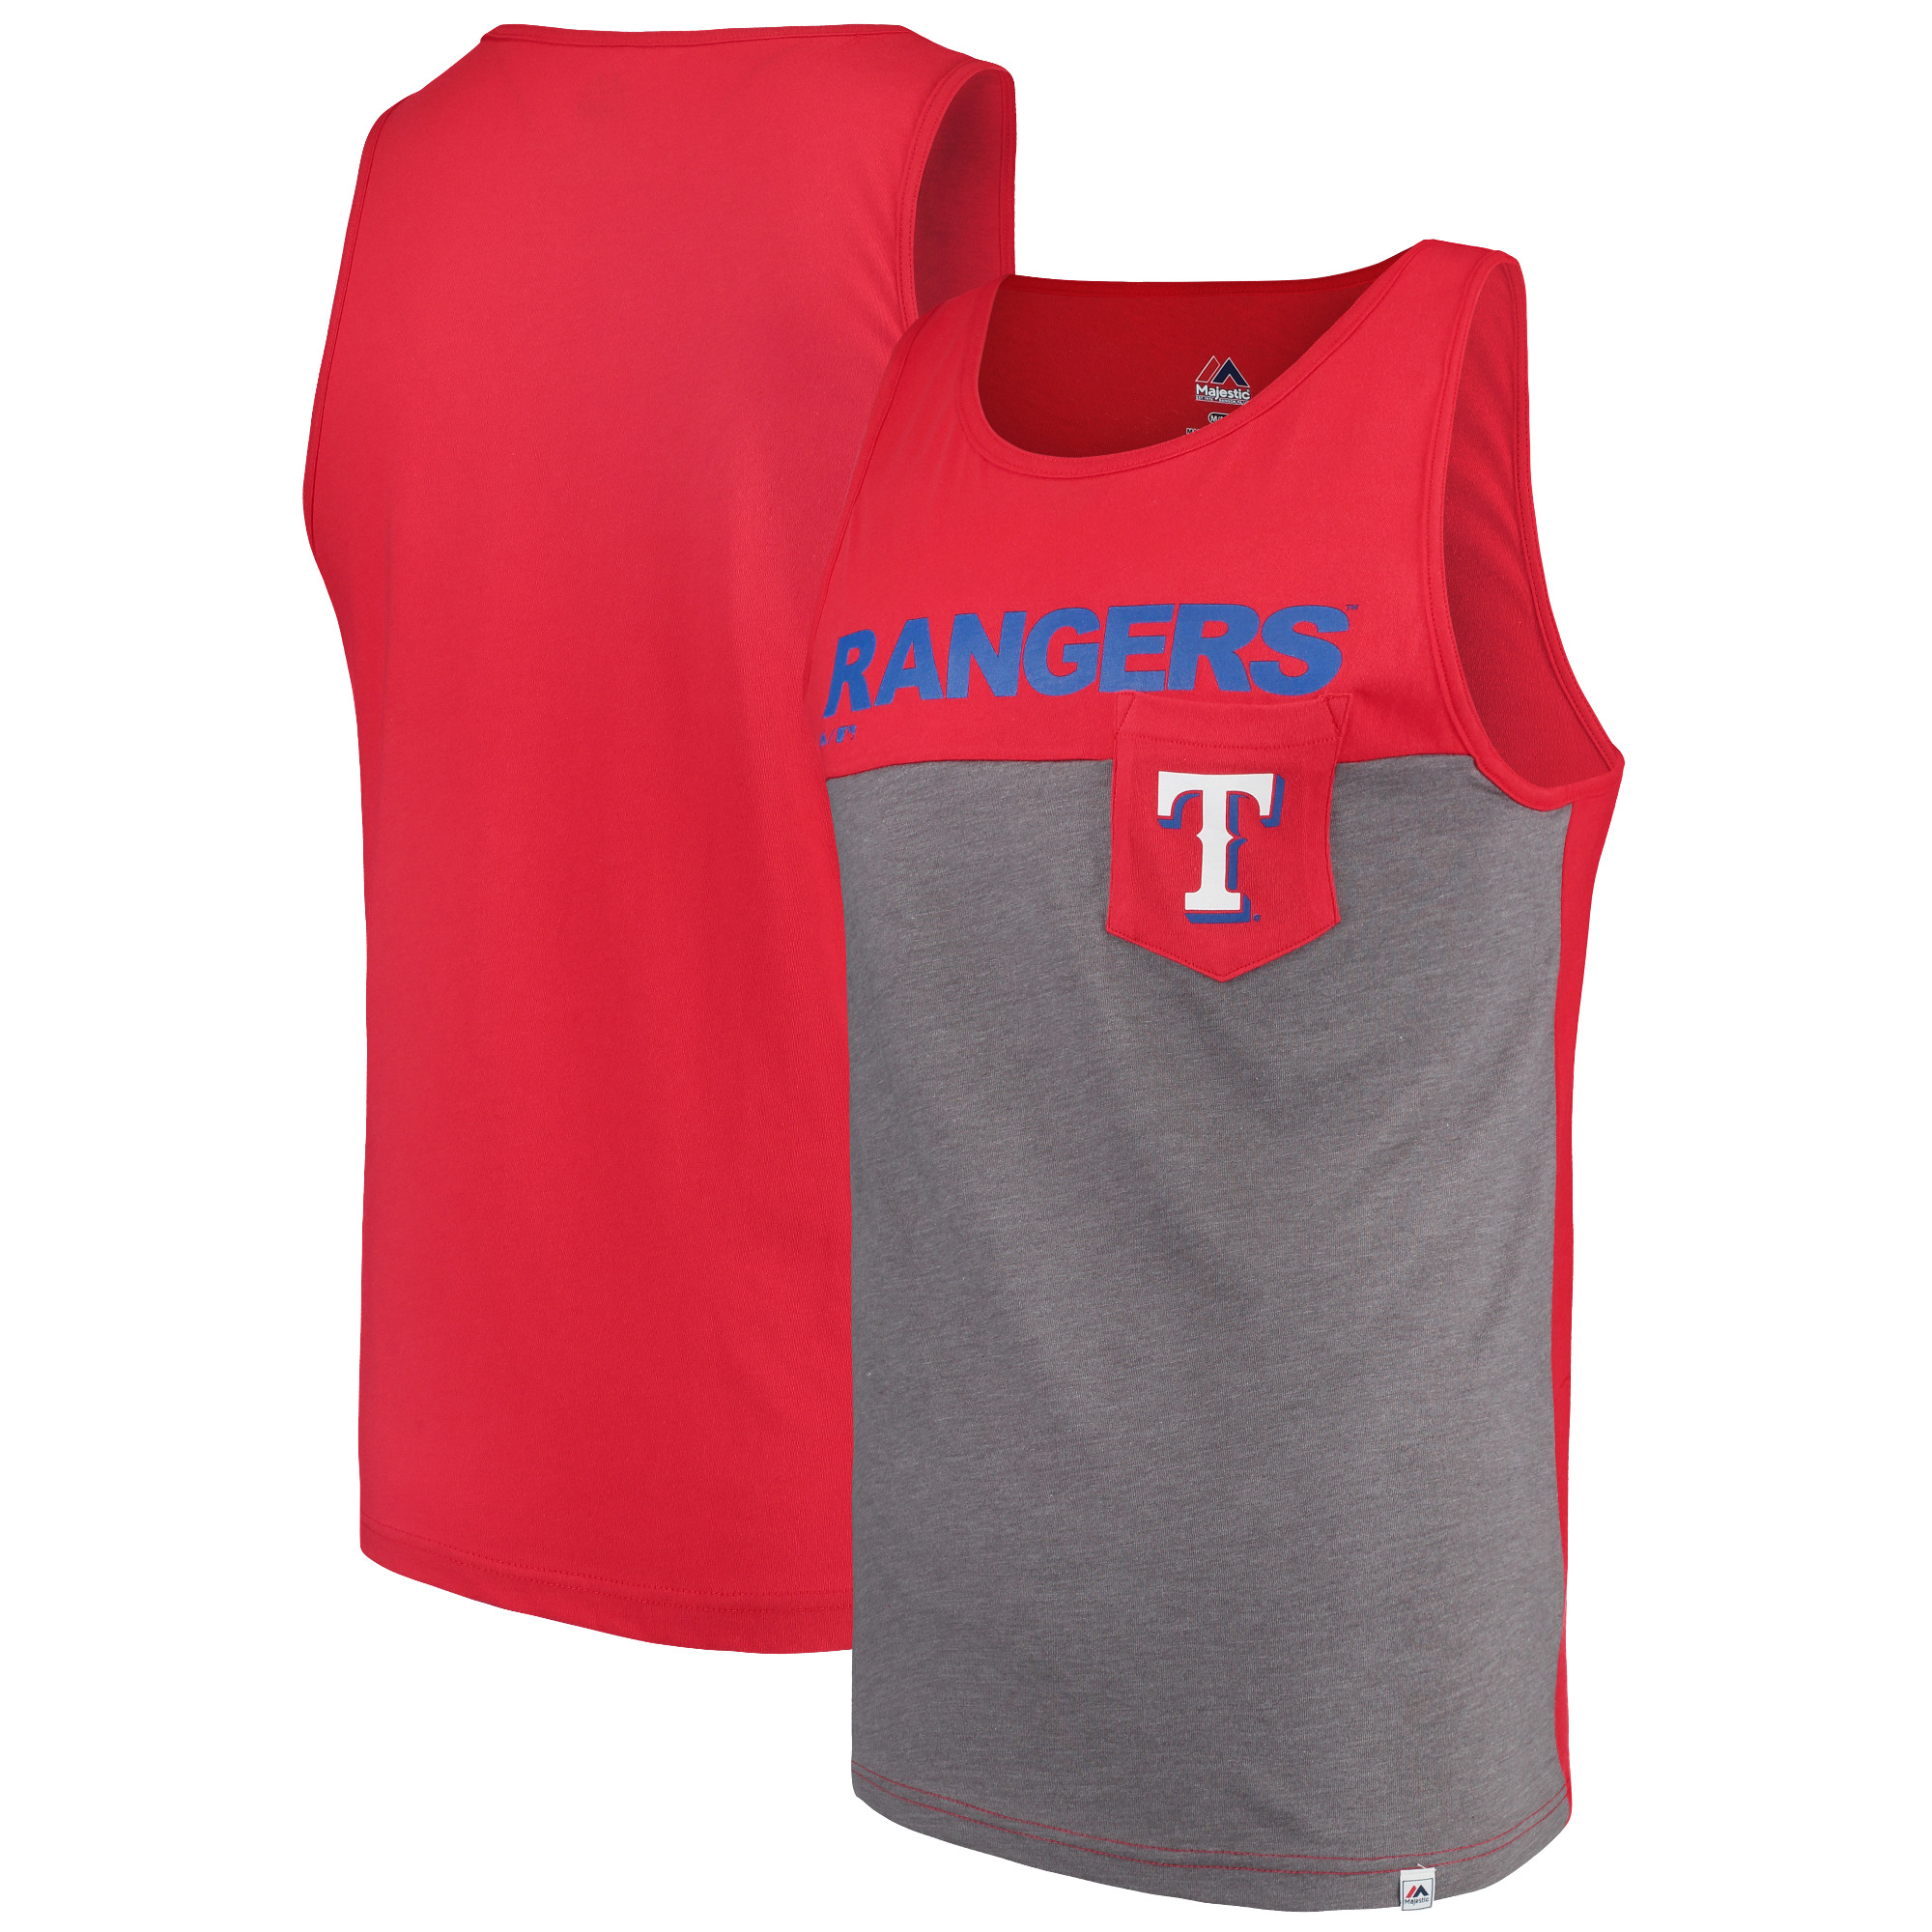 Texas Rangers Majestic Throw the Towel Pocket Tank Top - Red/Gray